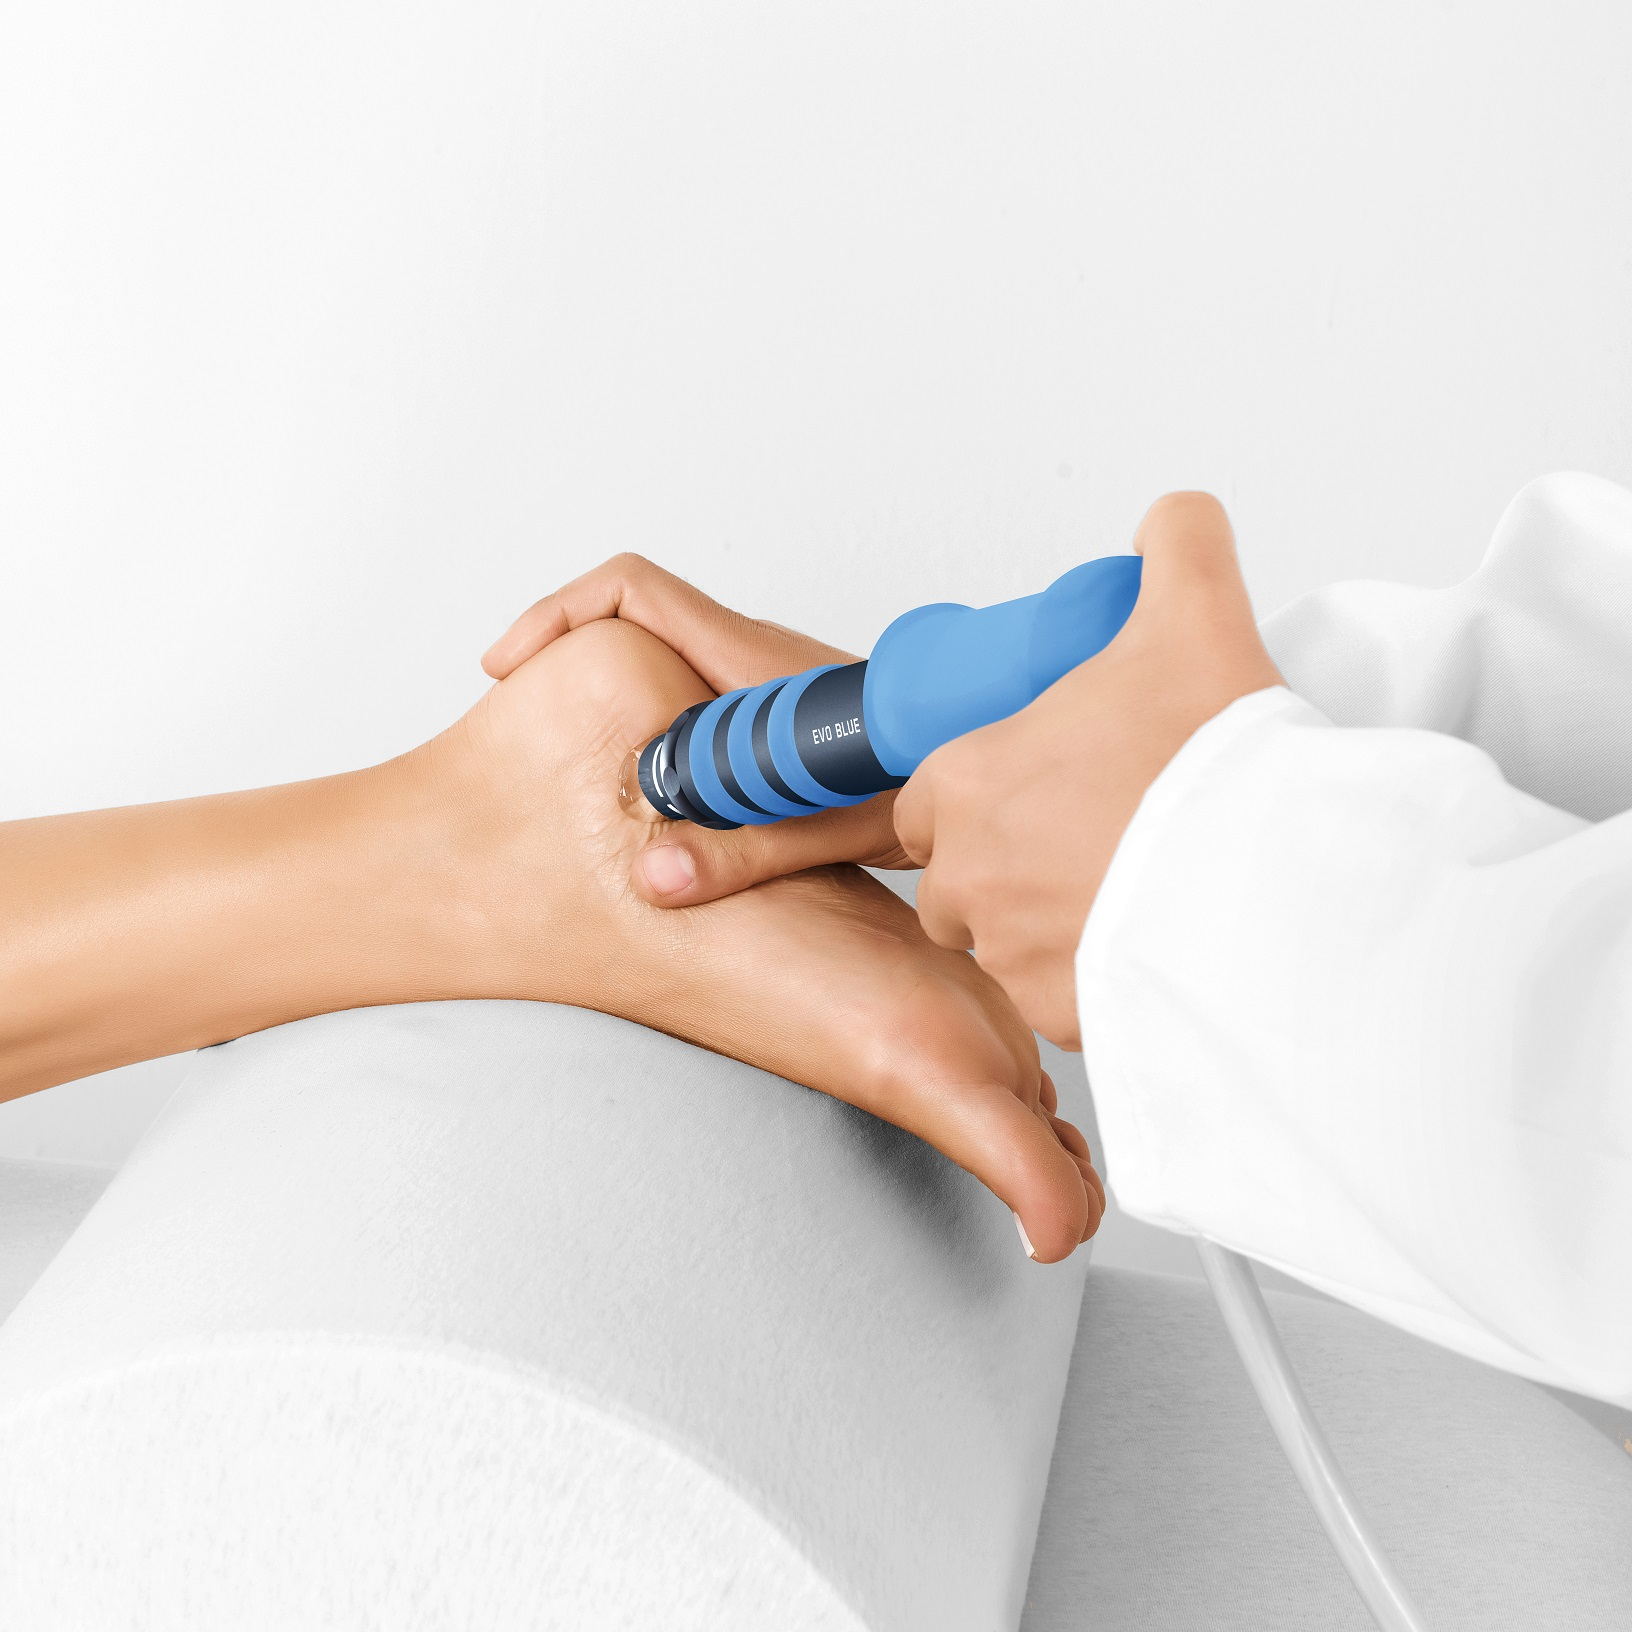 Extra-corporal Shockwave Therapy